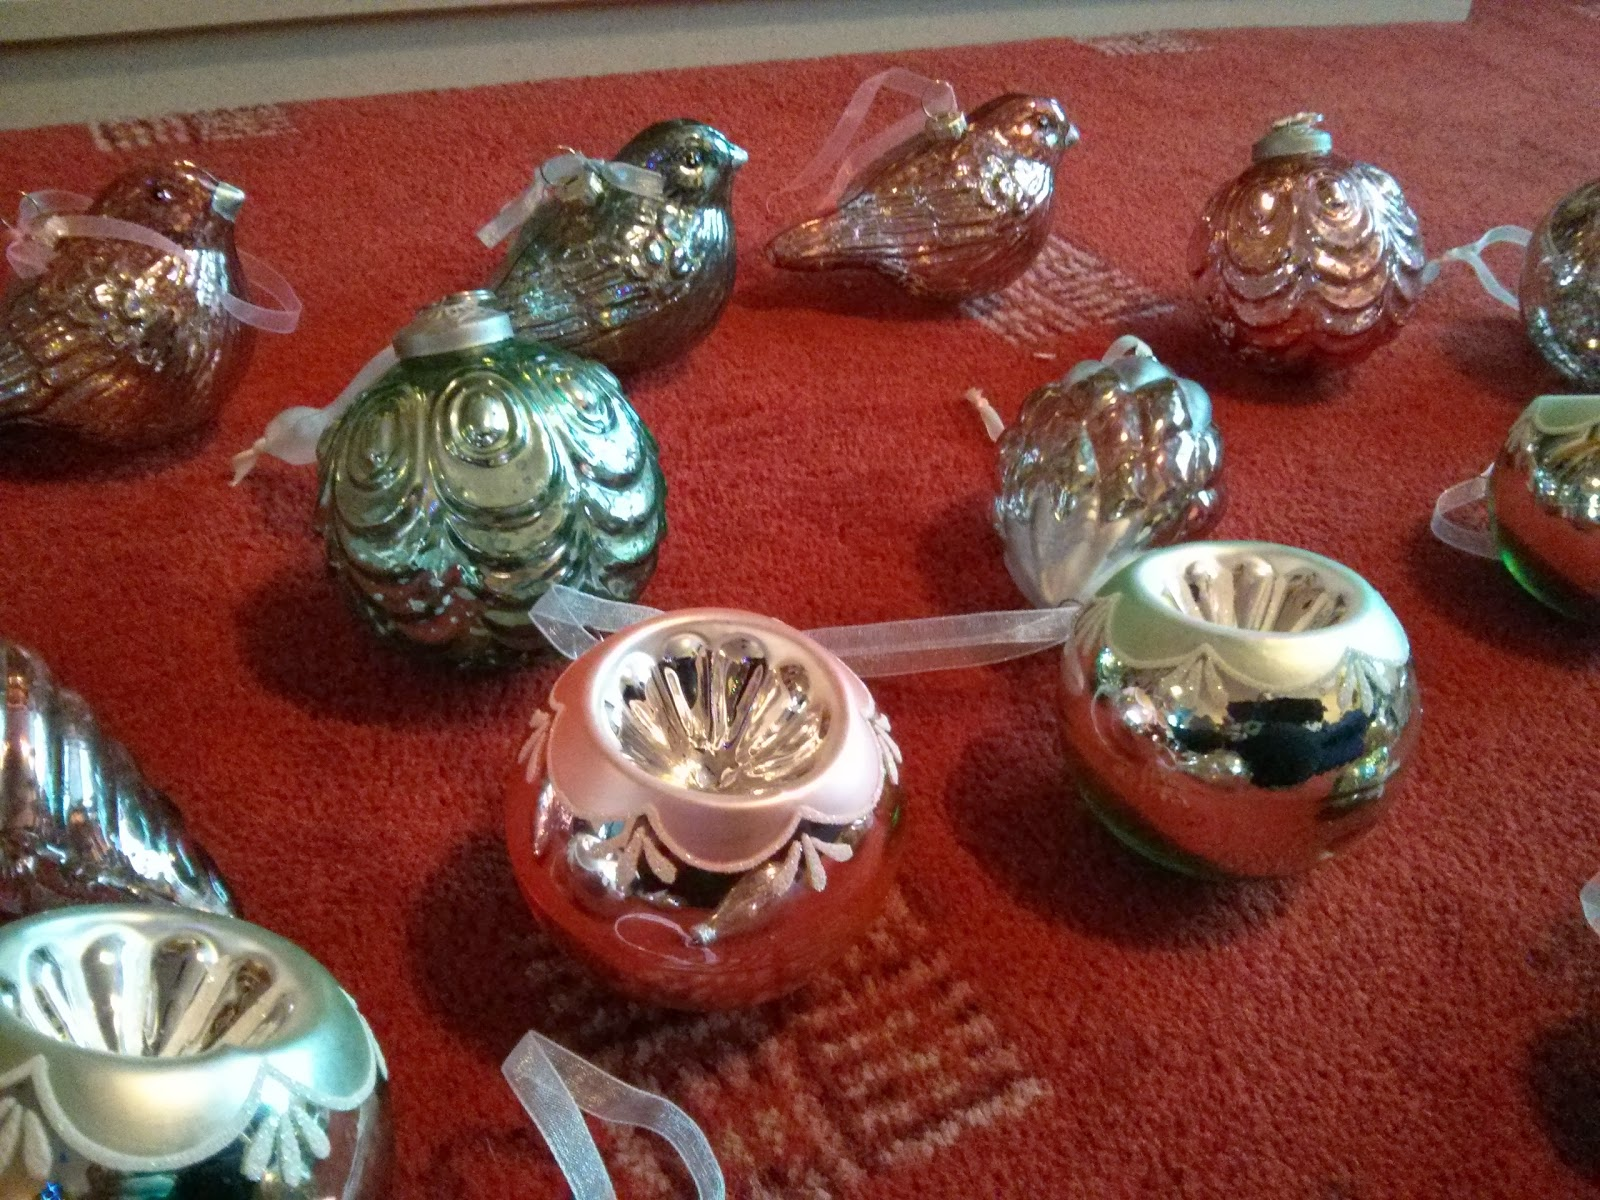 A Mothers Ramblings: John Lewis Christmas Decorations #Review